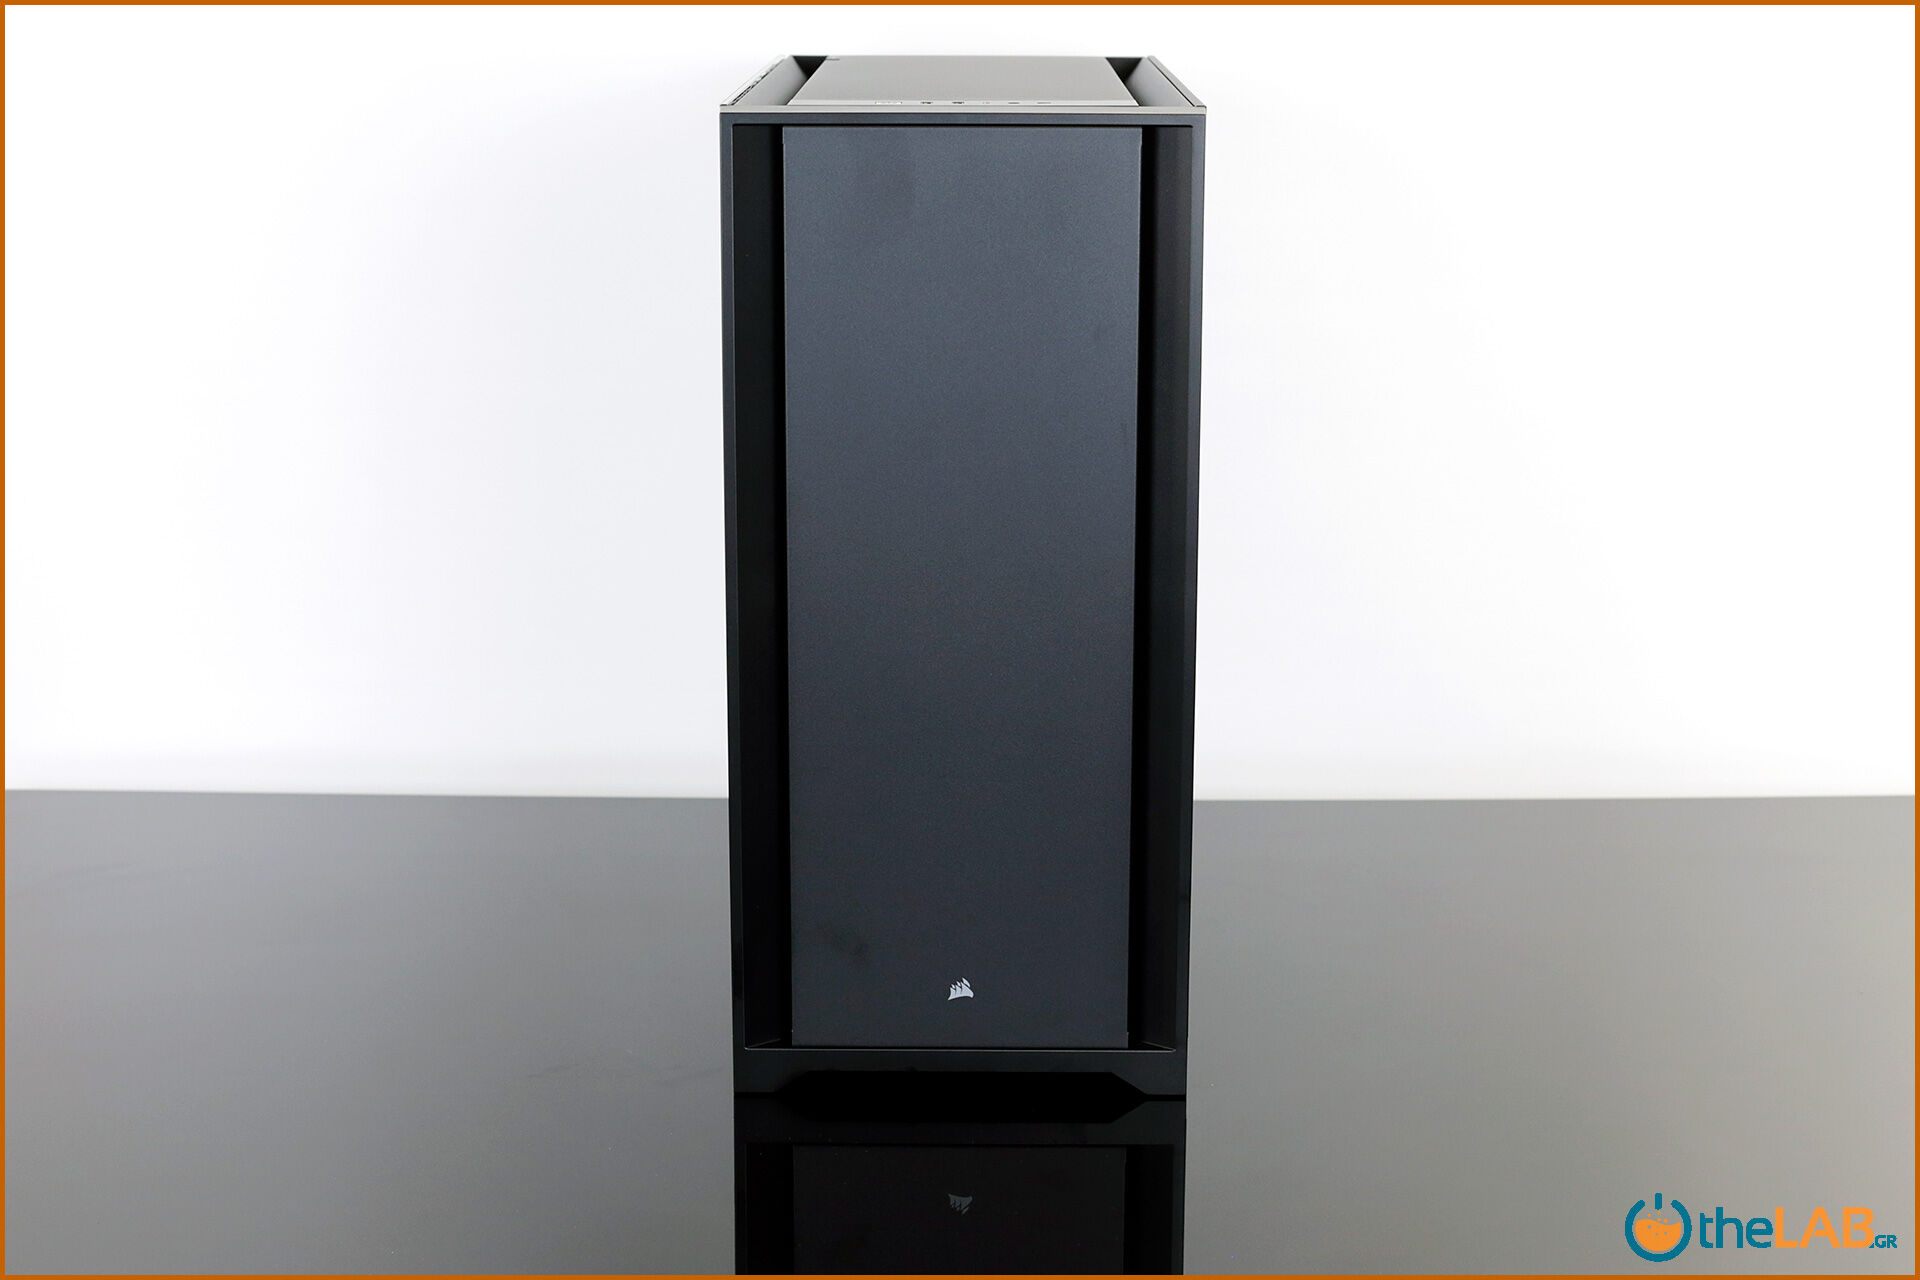 Corsair_icue_5000D__case_smart_exterior_interior_mid_tower_gaming_case_smart_review_image626.jpg